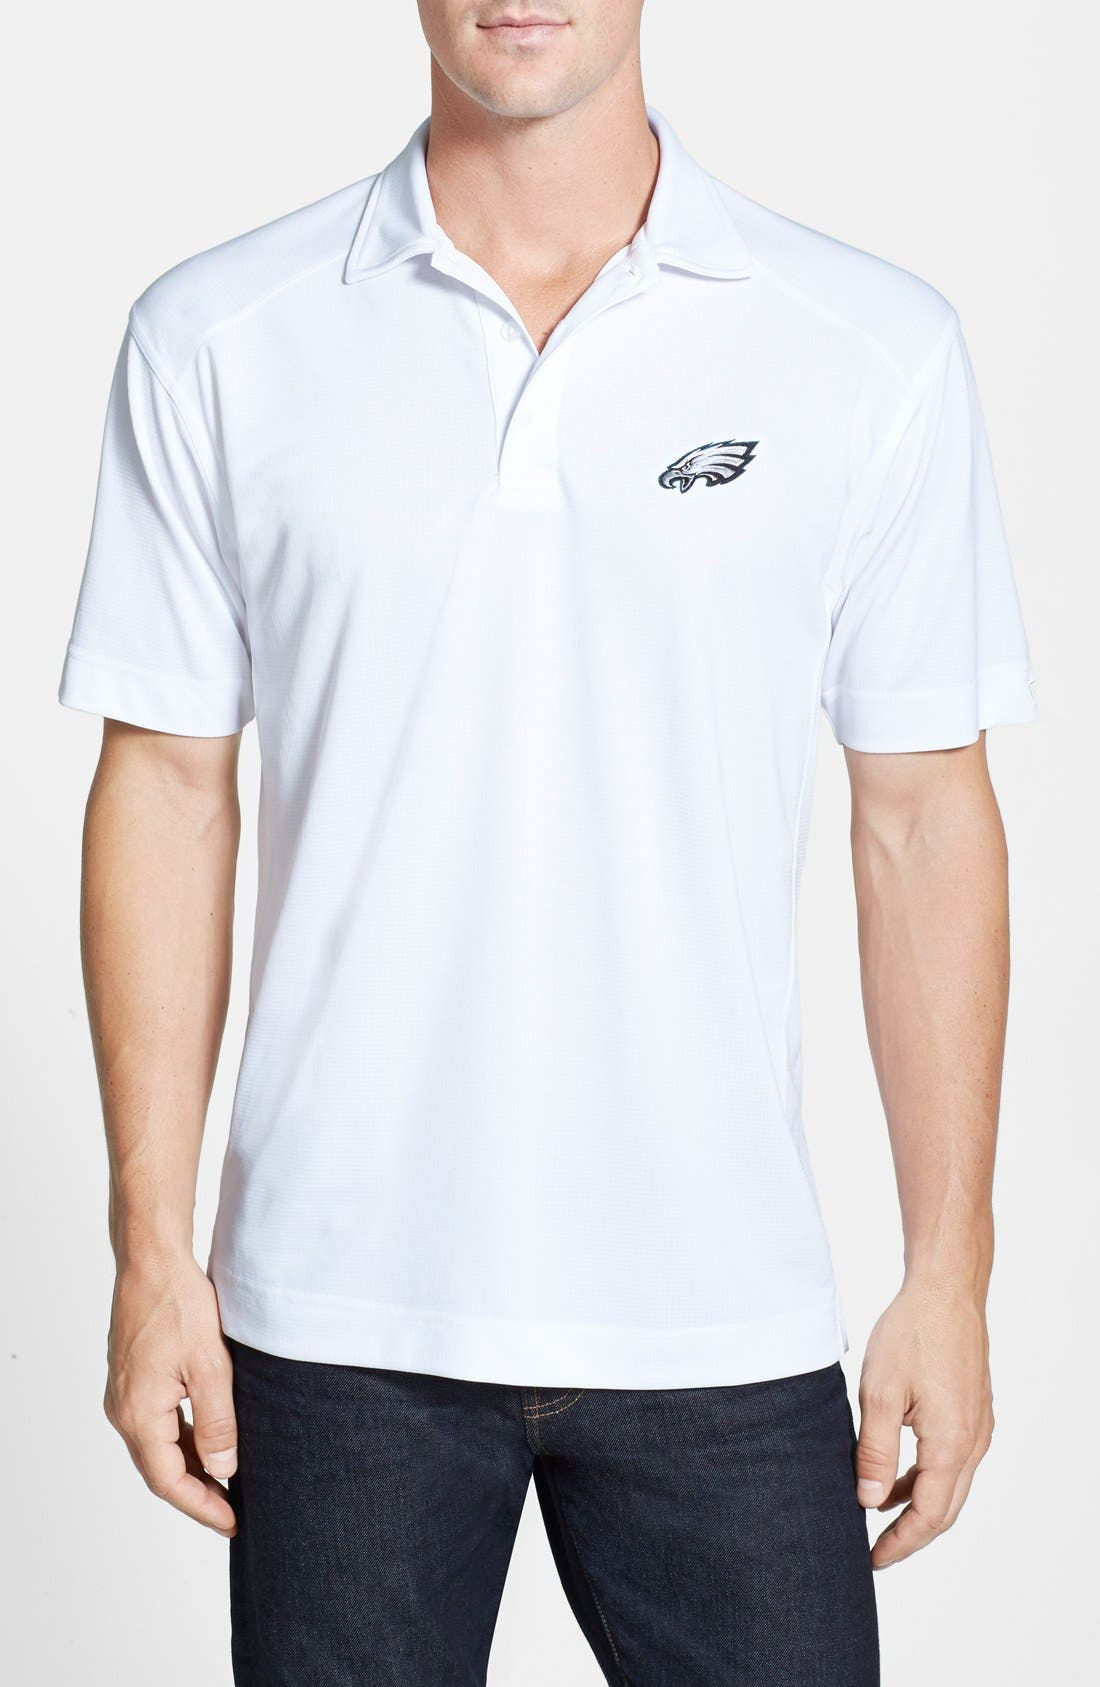 Main Image - Cutter & Buck Philadelphia Eagles - Genre DryTec Moisture Wicking Polo